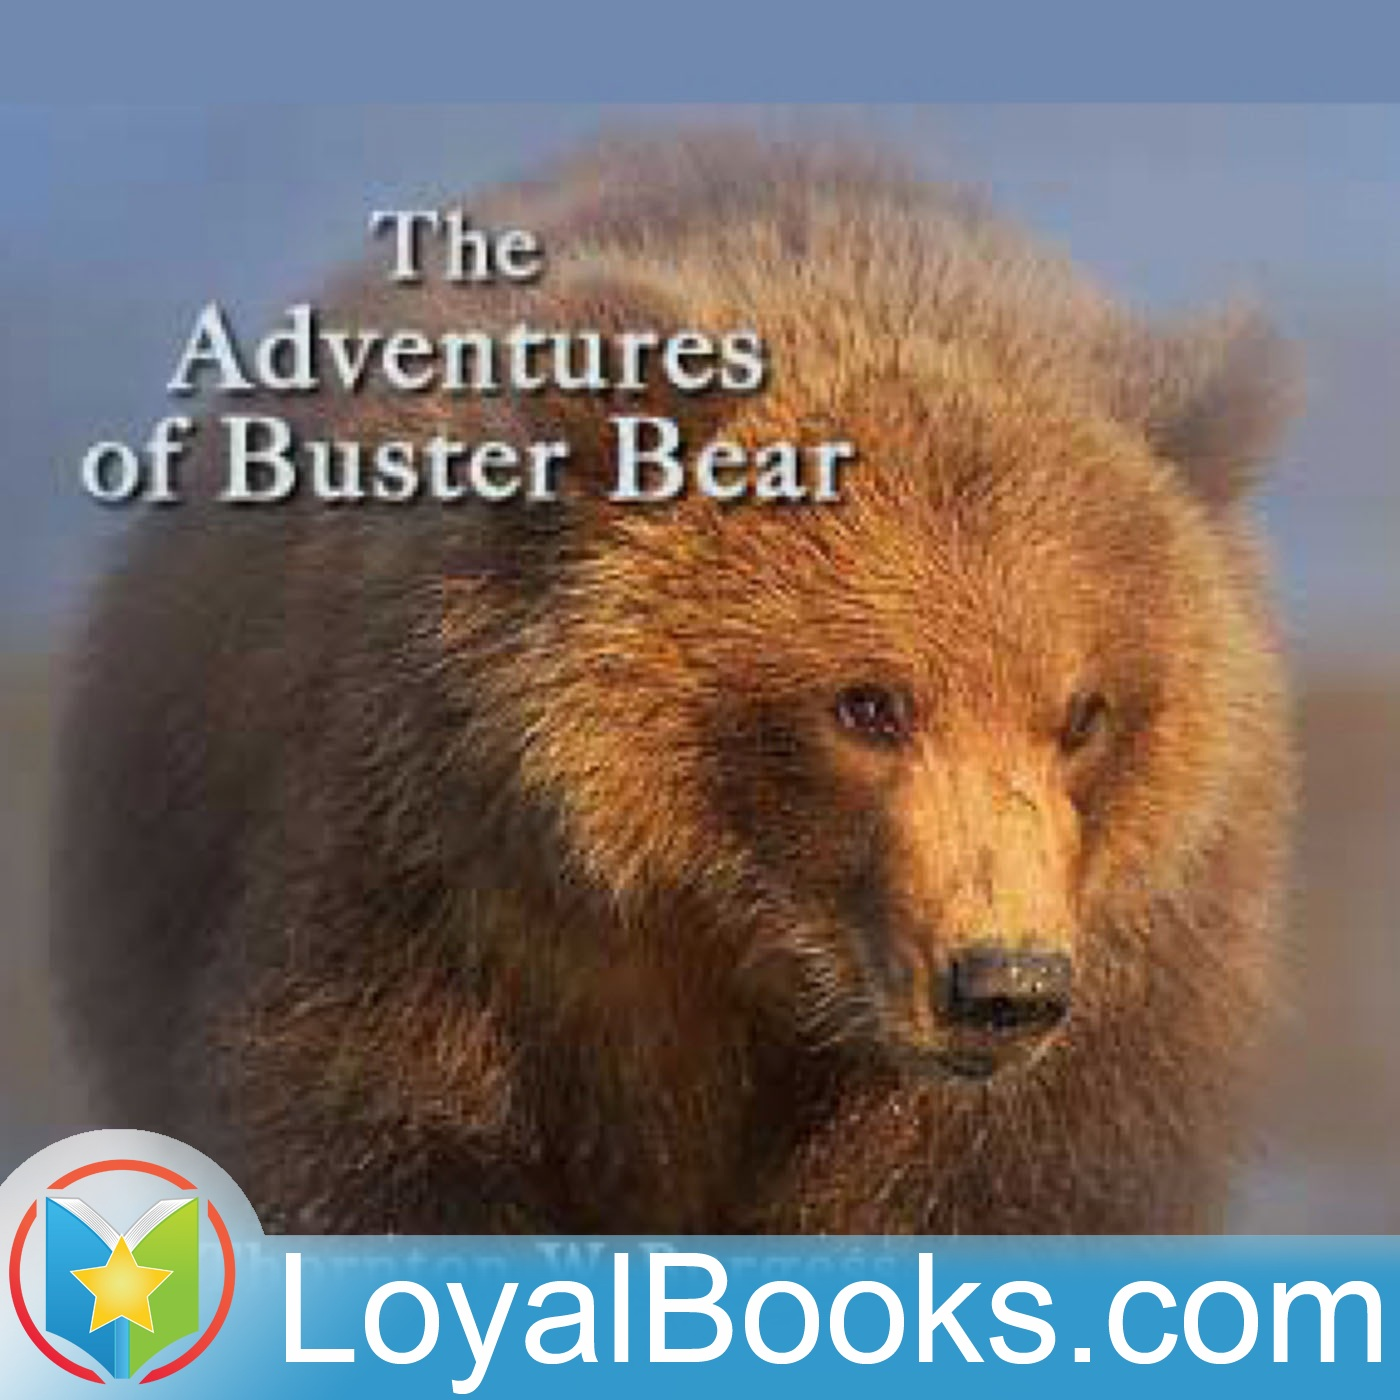 <![CDATA[The Adventures of Buster Bear by Thornton W. Burgess]]>